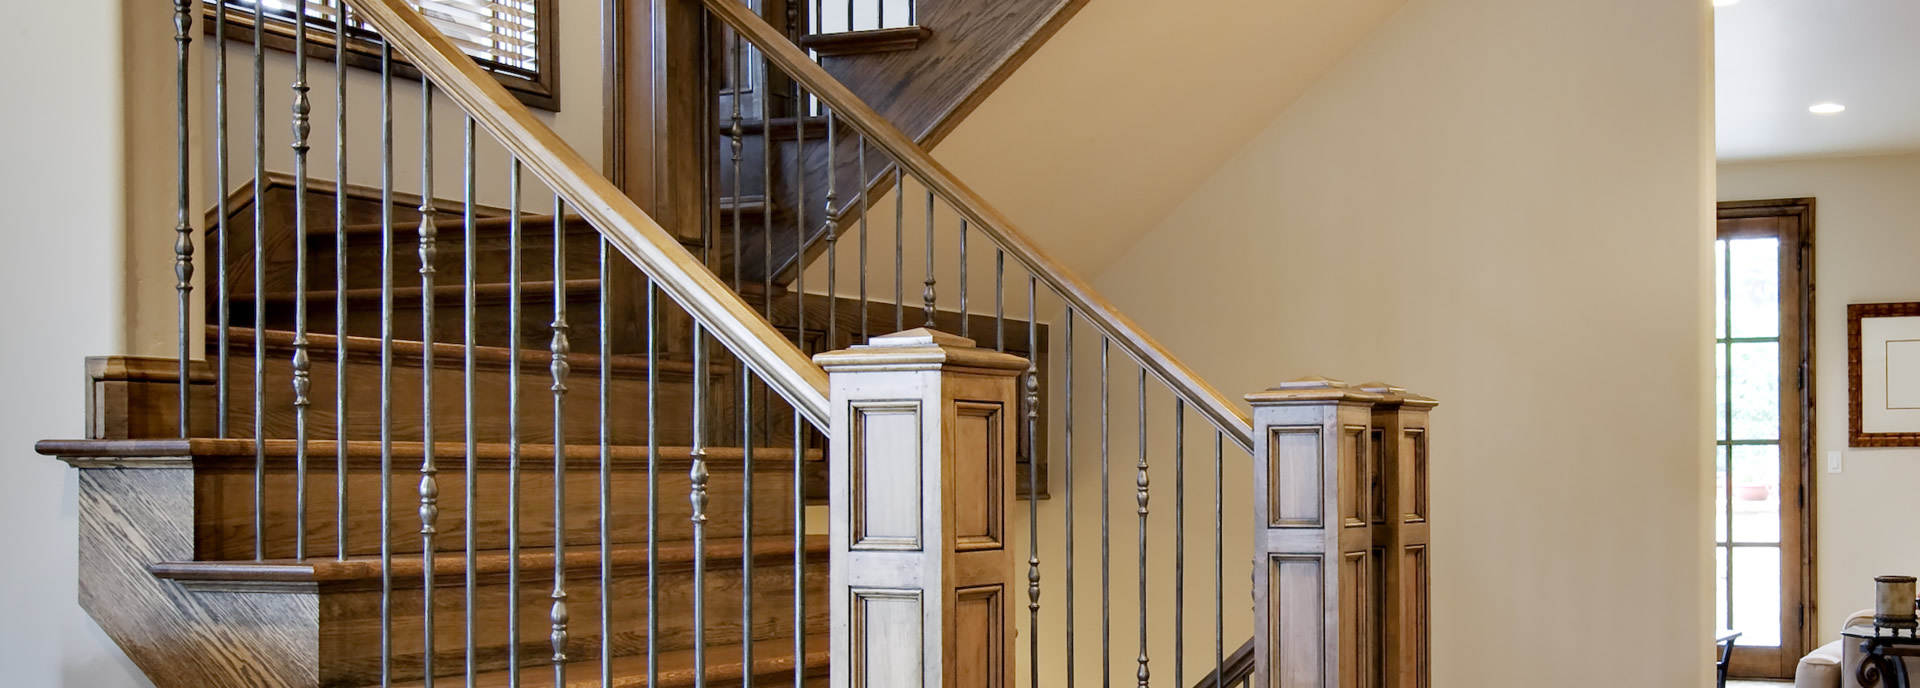 Top 3 Benefits of Choosing a Metal Staircase Alpharetta, GA